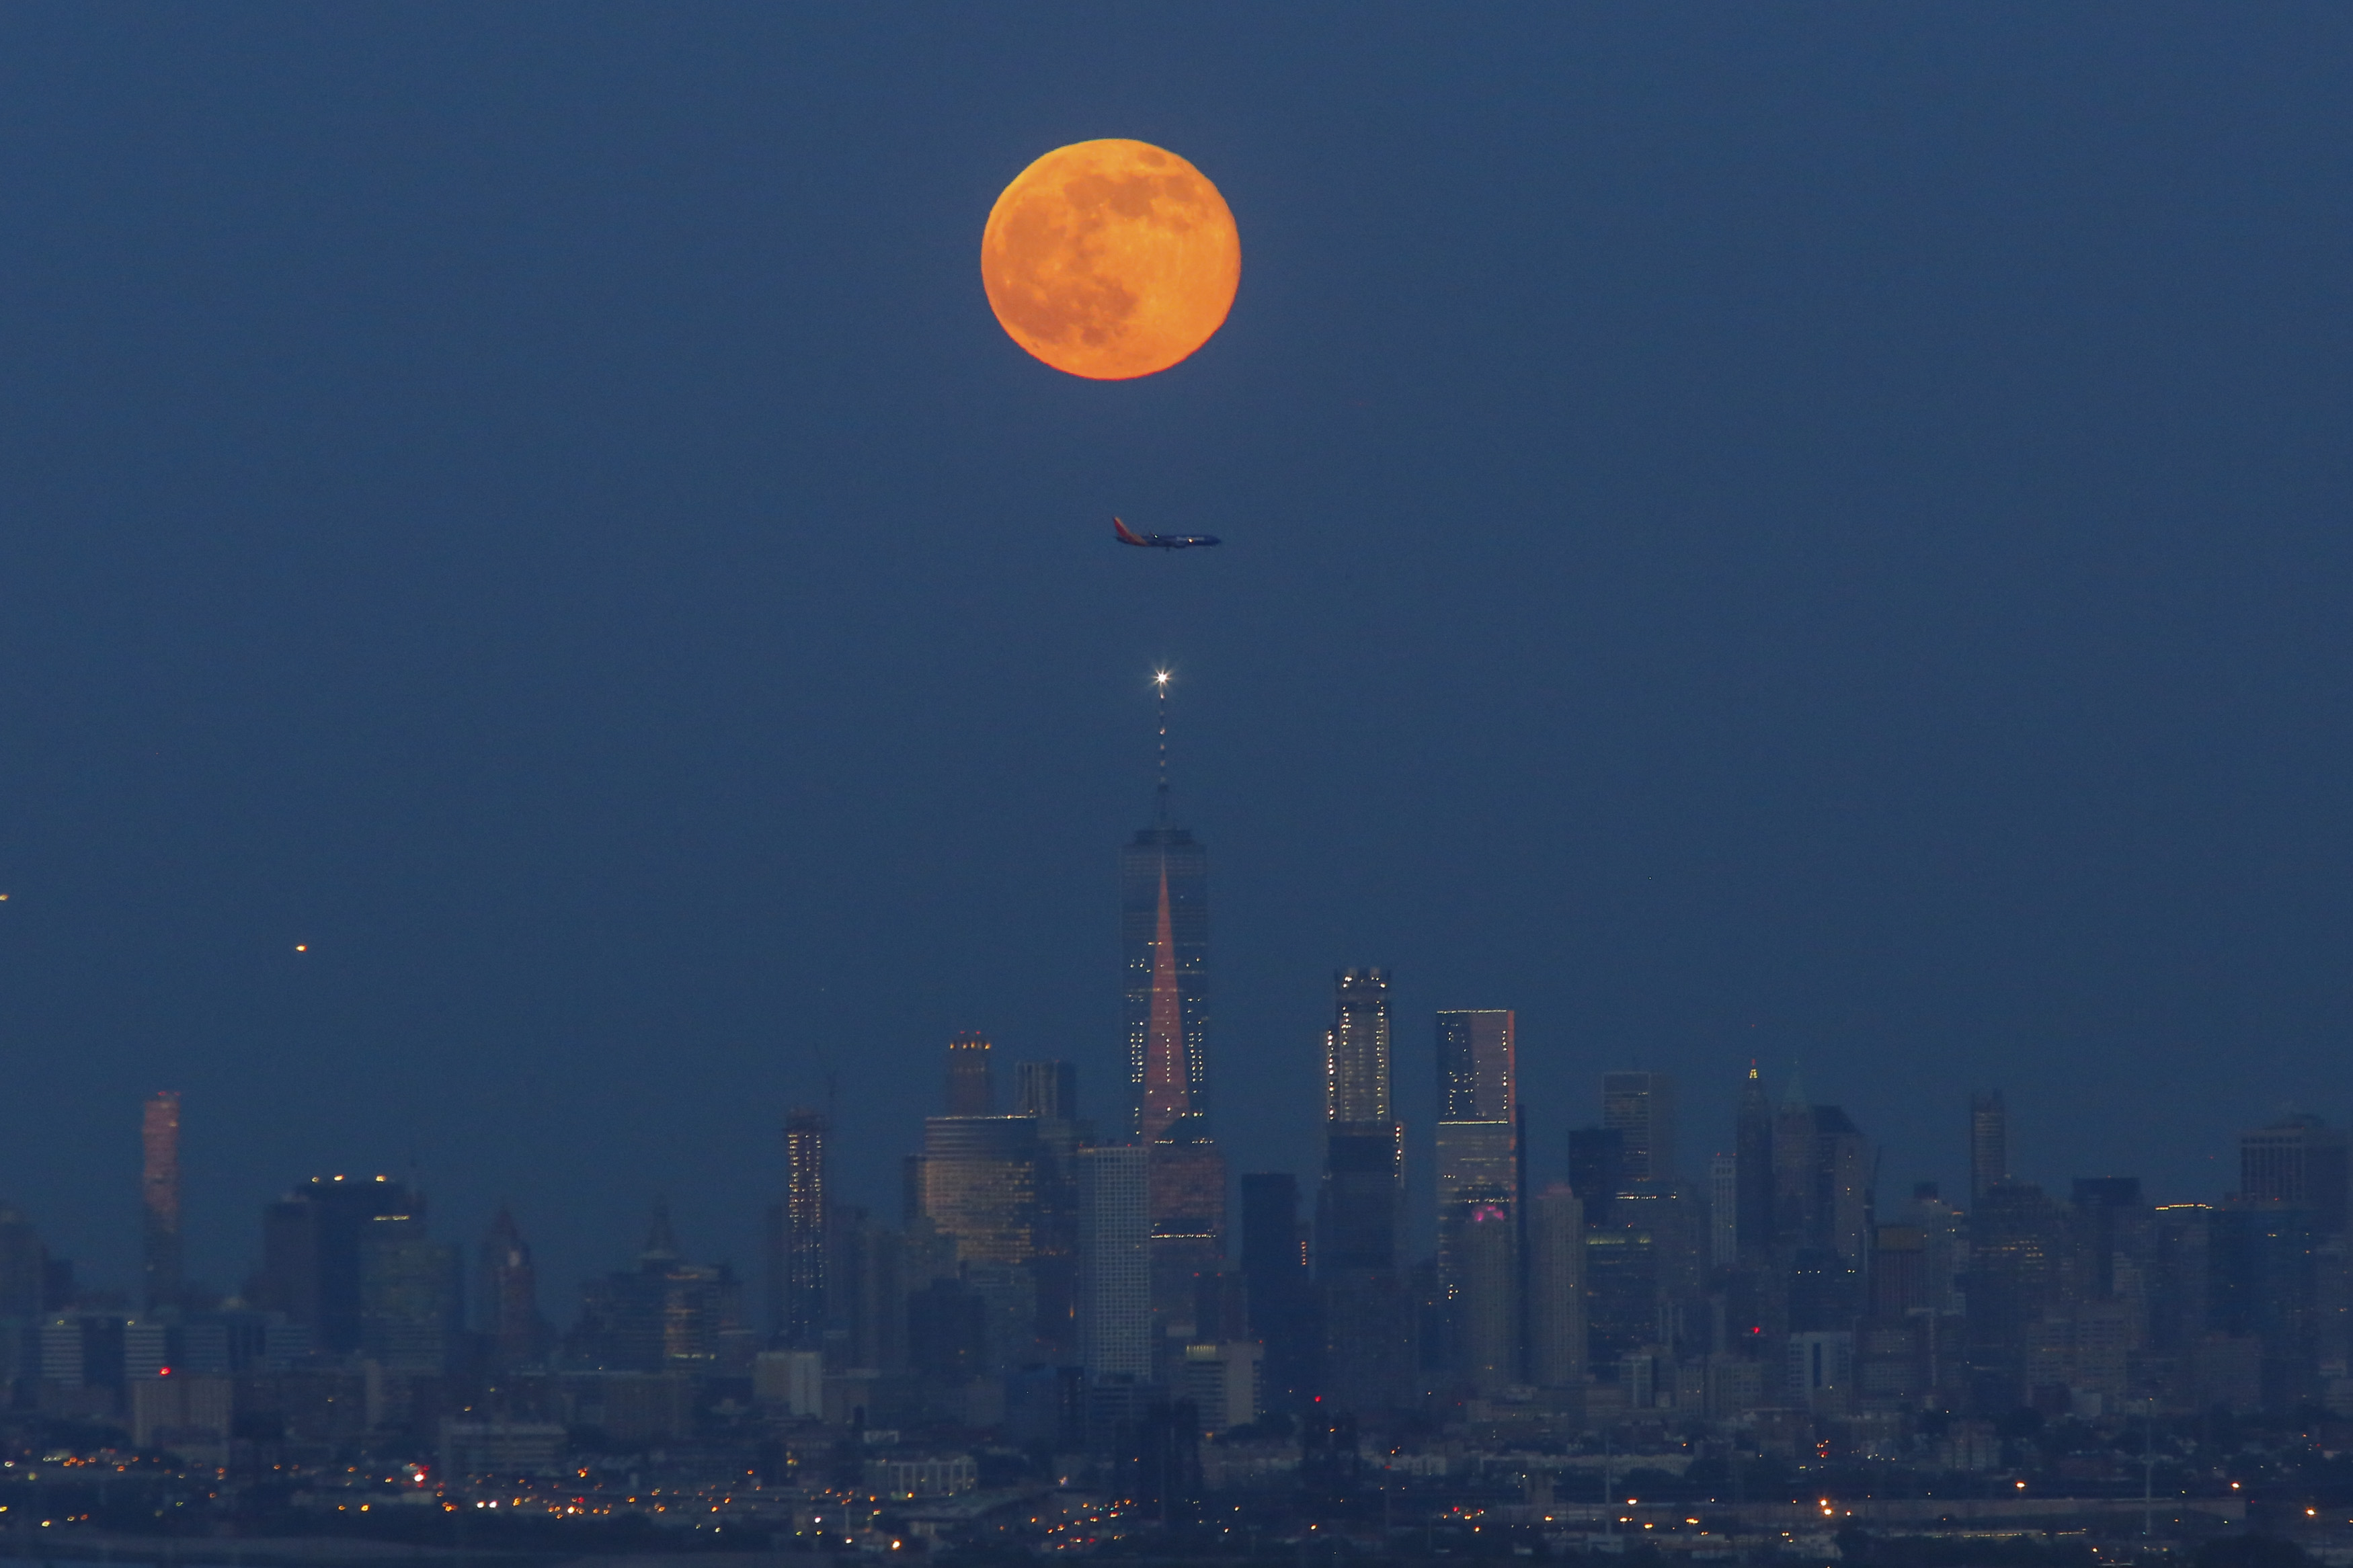 The Strawberry Moon rises over lower Manhattan and One World Trade Center on June 06, 2017 in Montclair, New Jersey. (Photo by Kena Betancur/VIEWpress/Corbis via Getty Images)